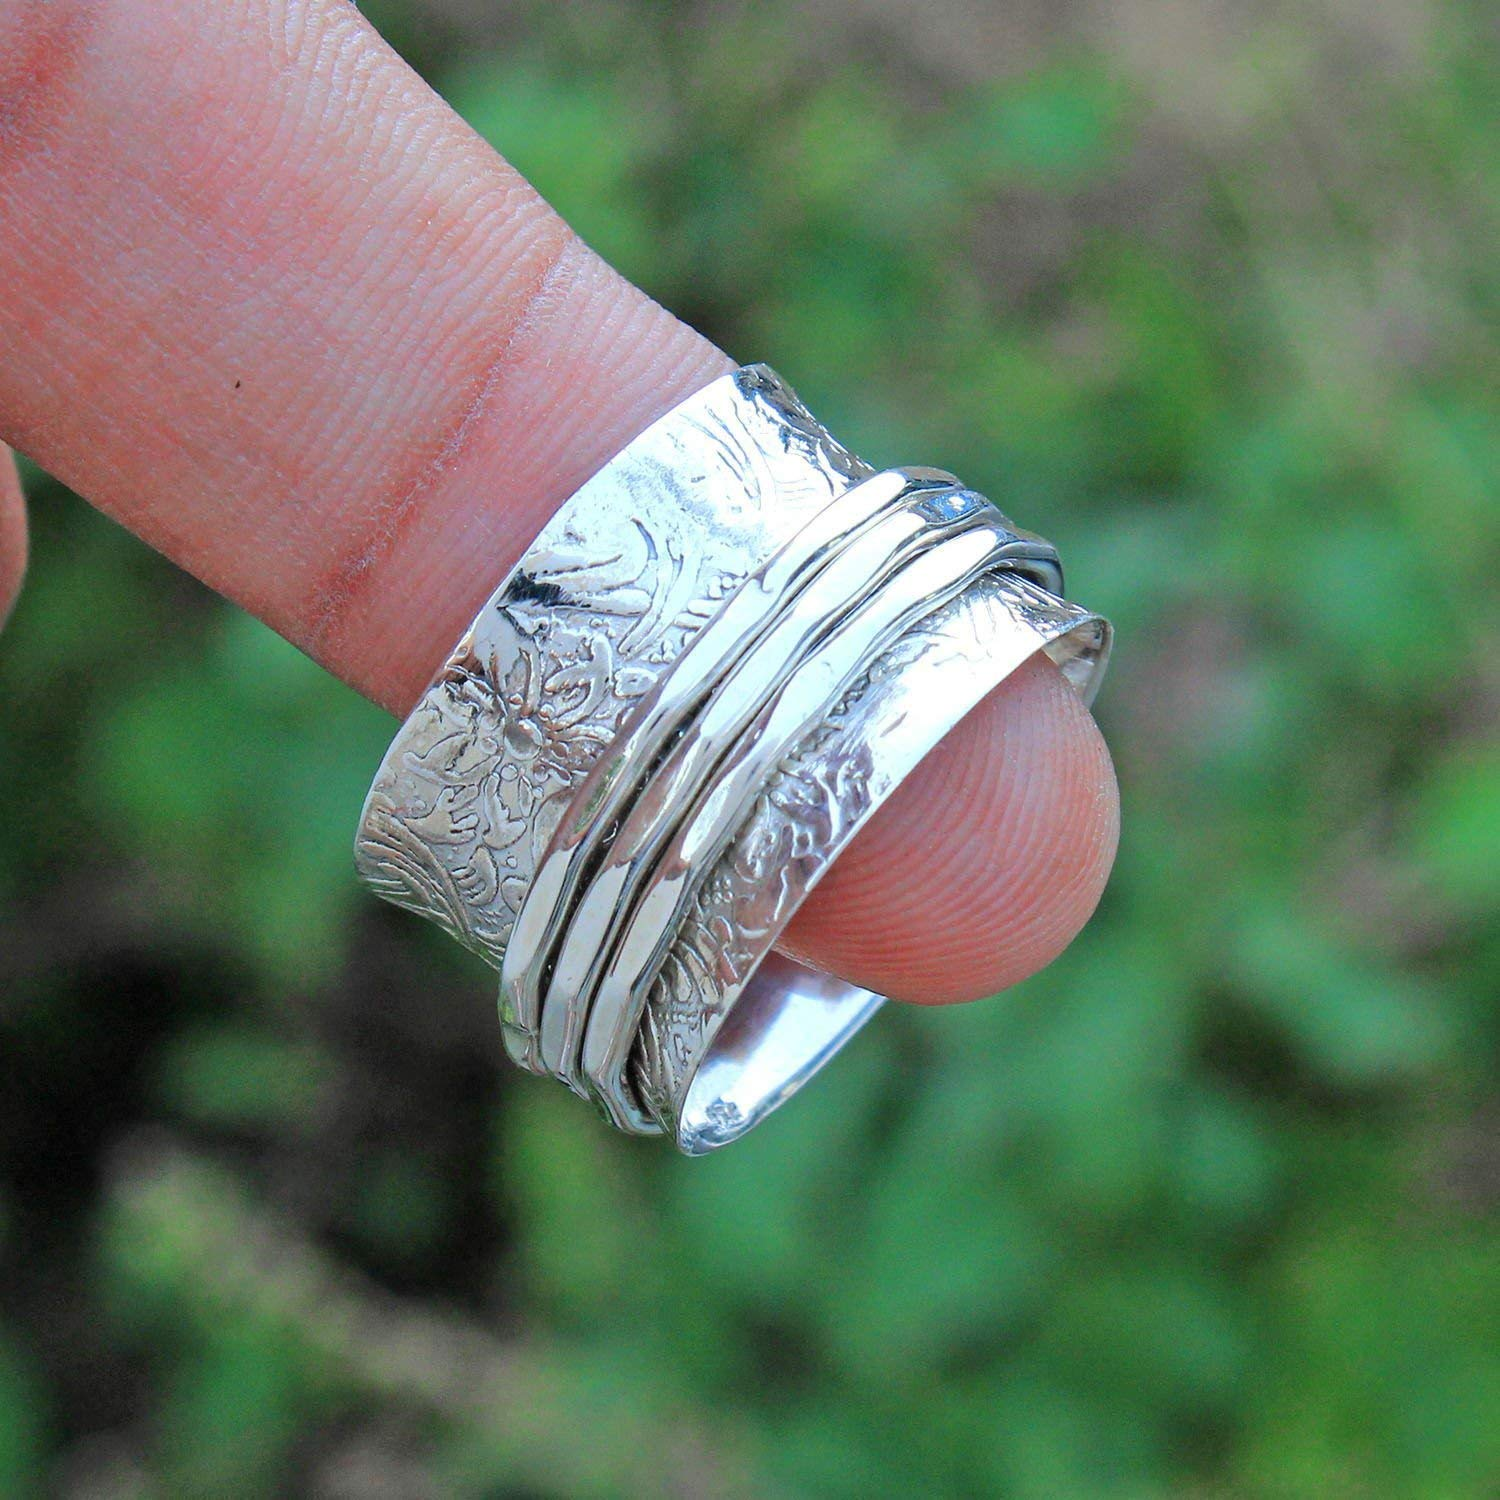 925 sterling silver spinner ring spinner rings women textured ring meditation wide band ring spinner ring handmade ring spinner band silver ring fidget ring spinning jewelry gift for girlfriend